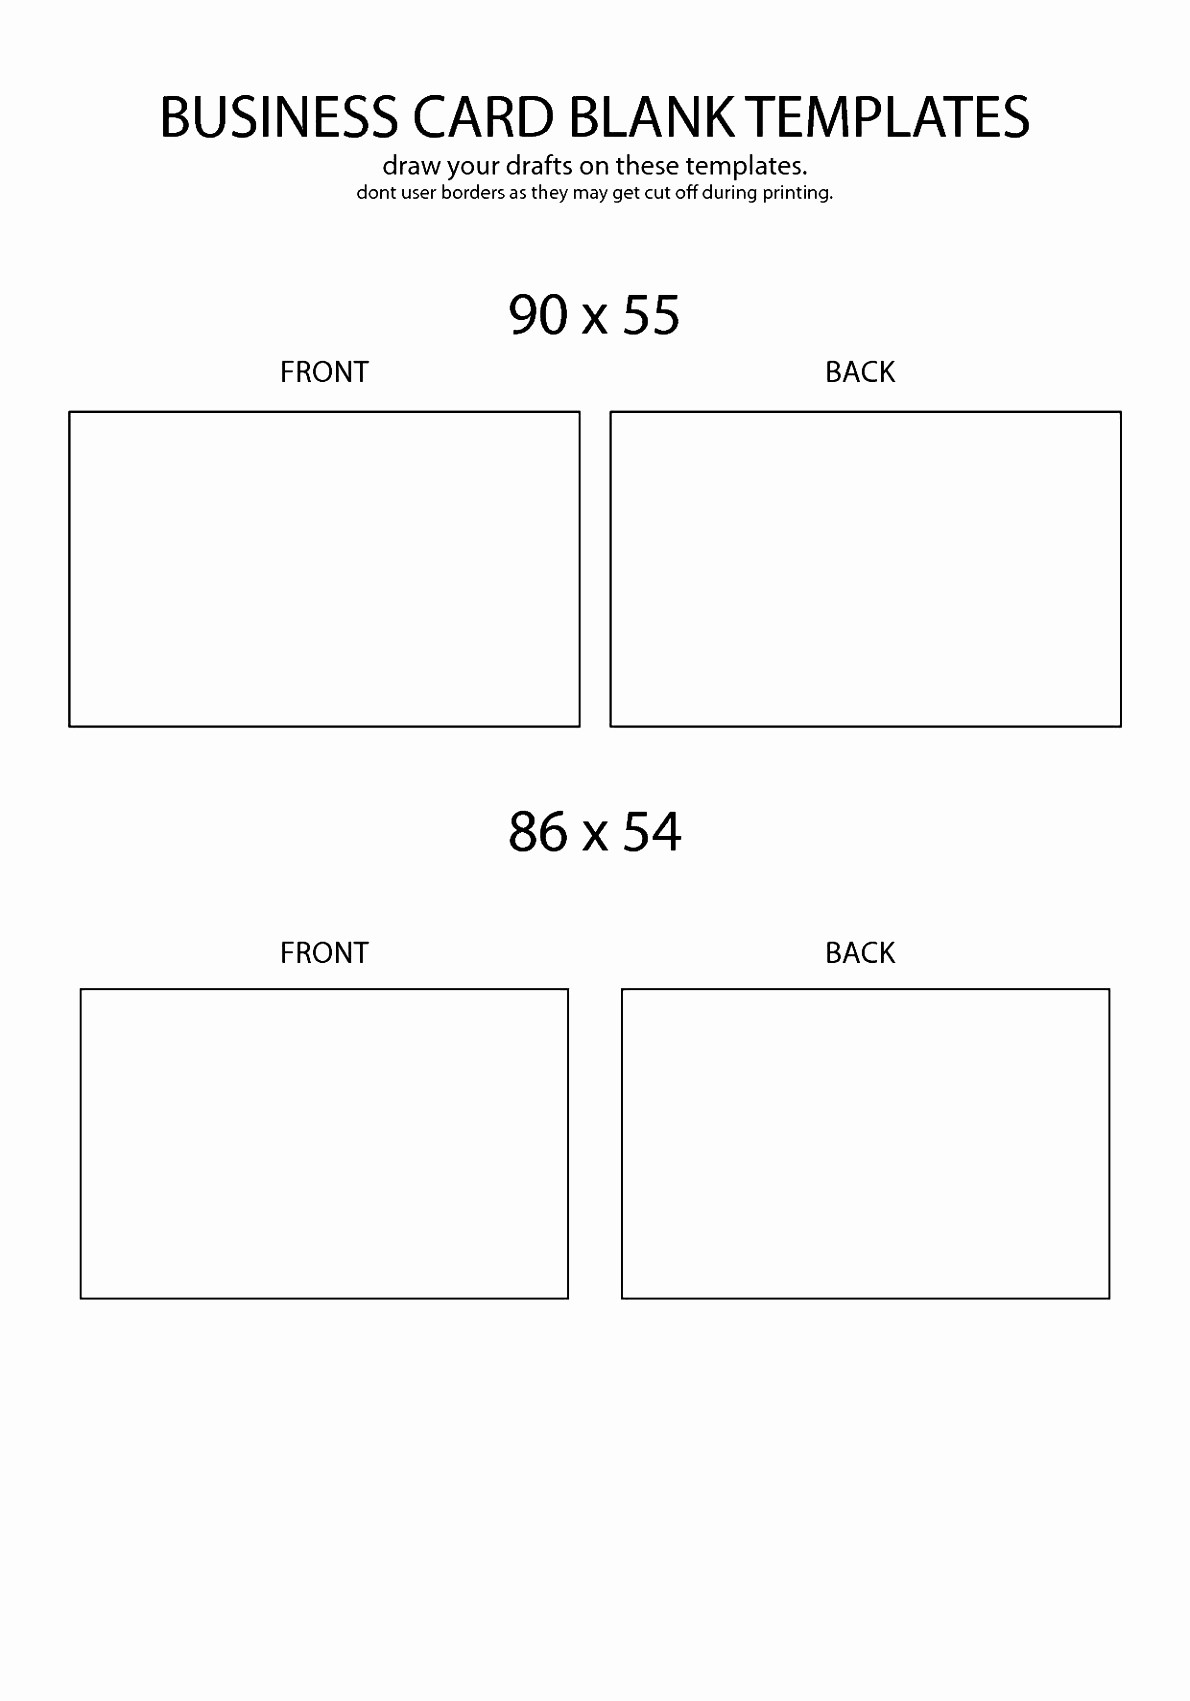 Business Card Template Word Doc Unique 5 Free Template for Business Cards Word Awifa